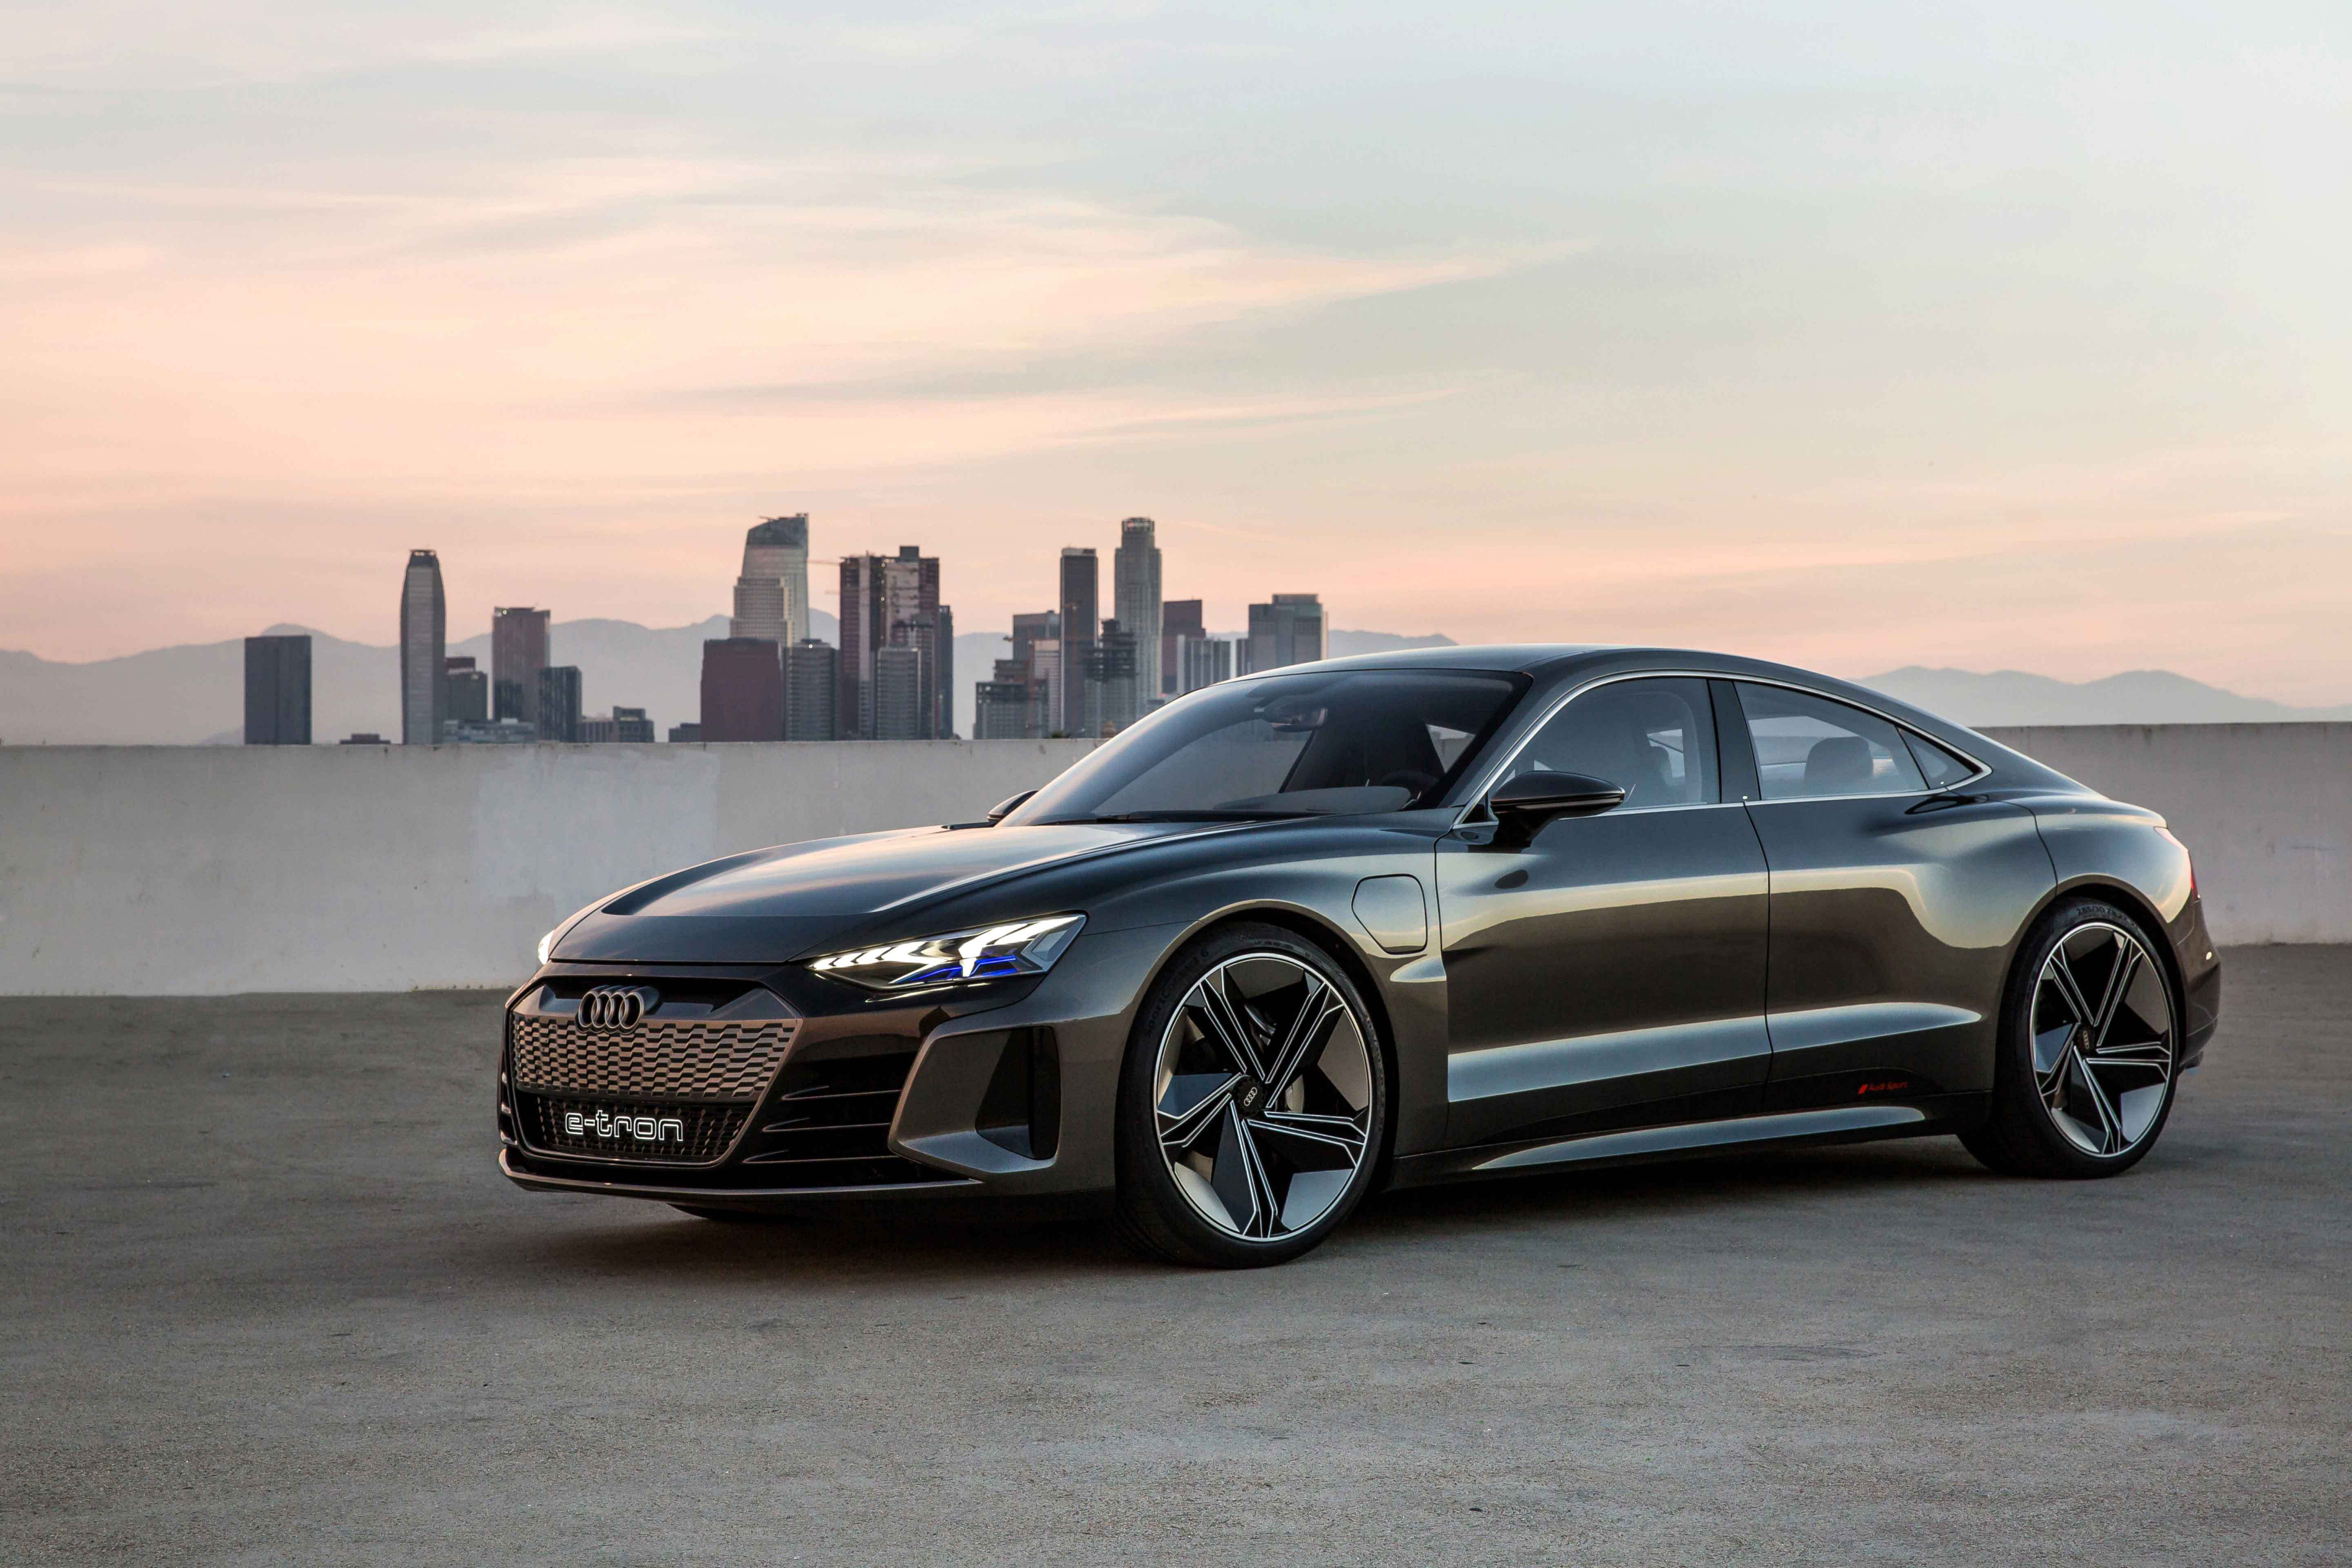 New Leading Role For Electric Performance The Audi E Tron Gt